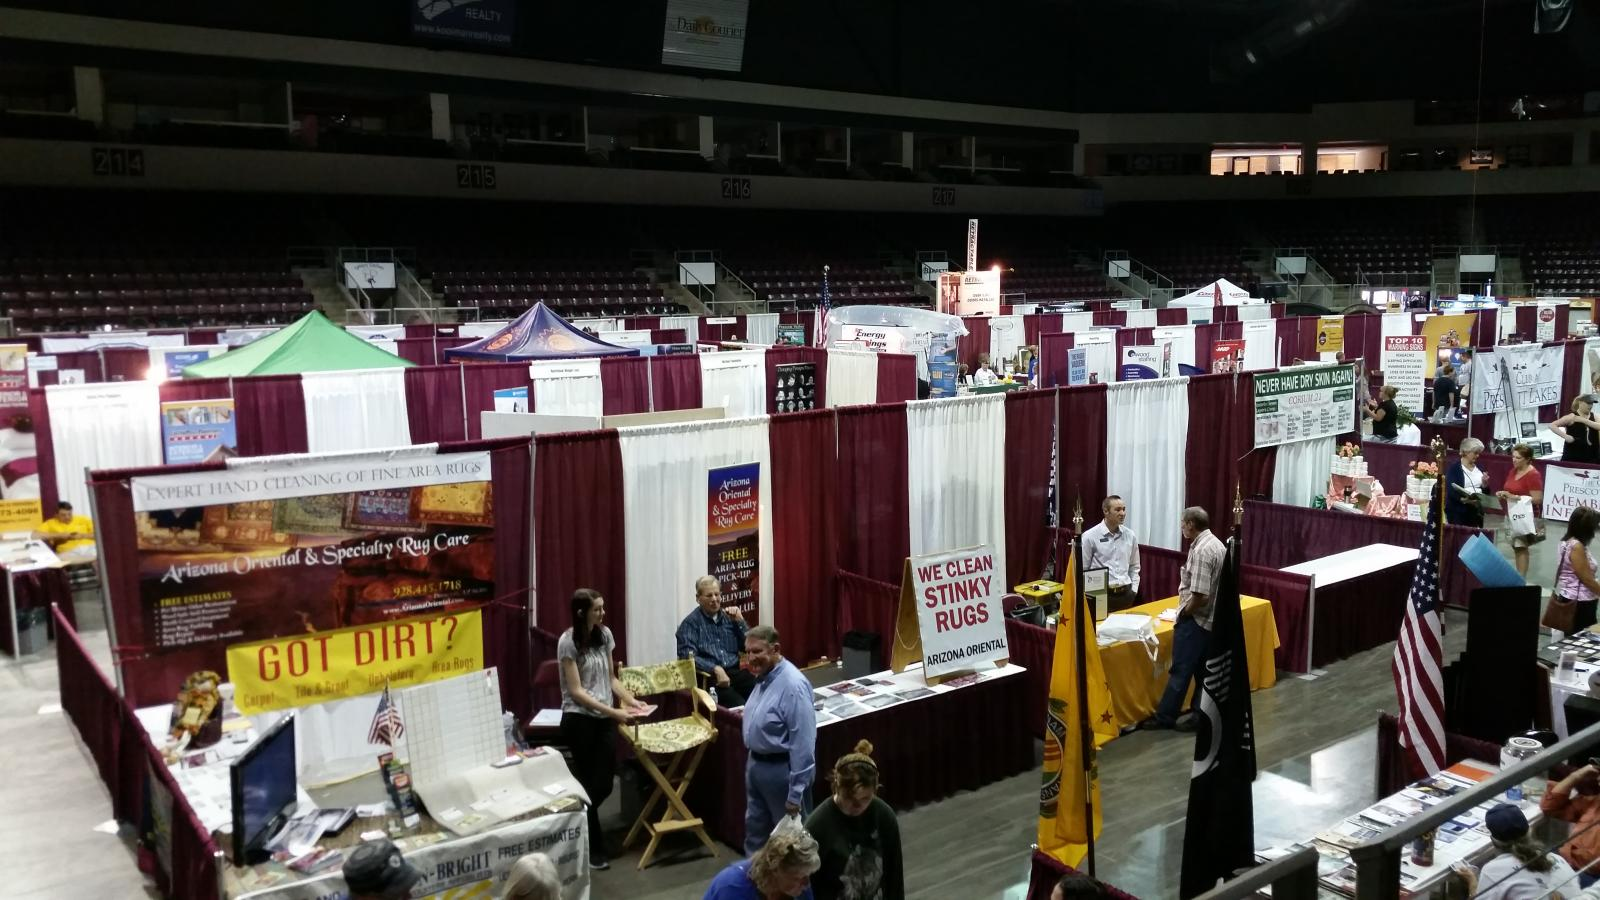 Rug Cleaning Showcased At The Prescott Valley Event Center